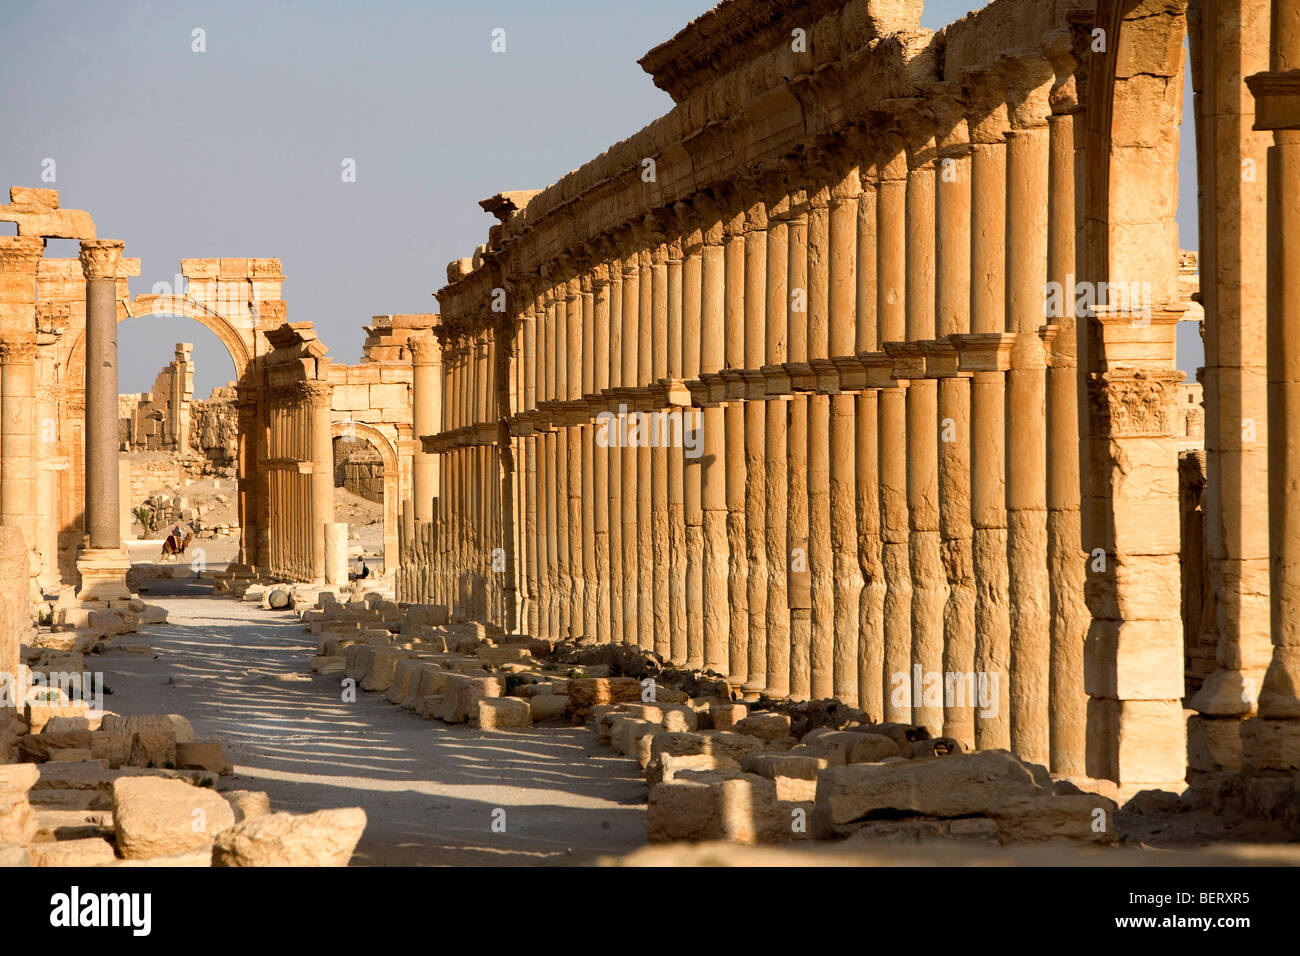 Roman ruins and archaeological site in Palmyra, Syria, Middle East, Asia - Stock Image